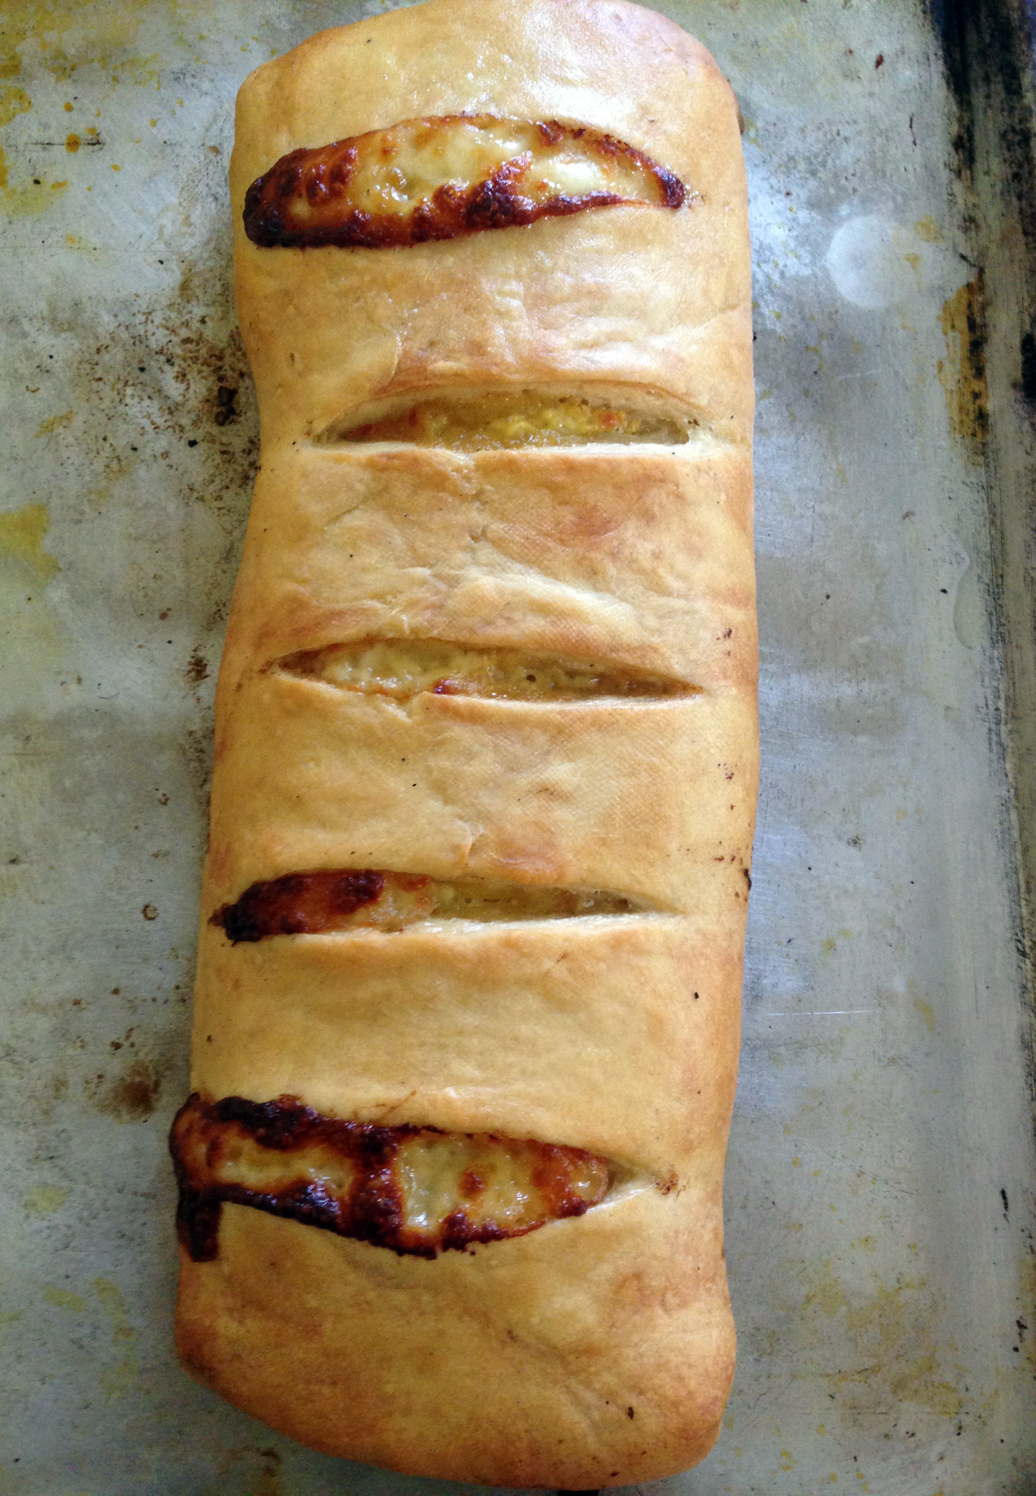 Is it a stromboli or a mummy?